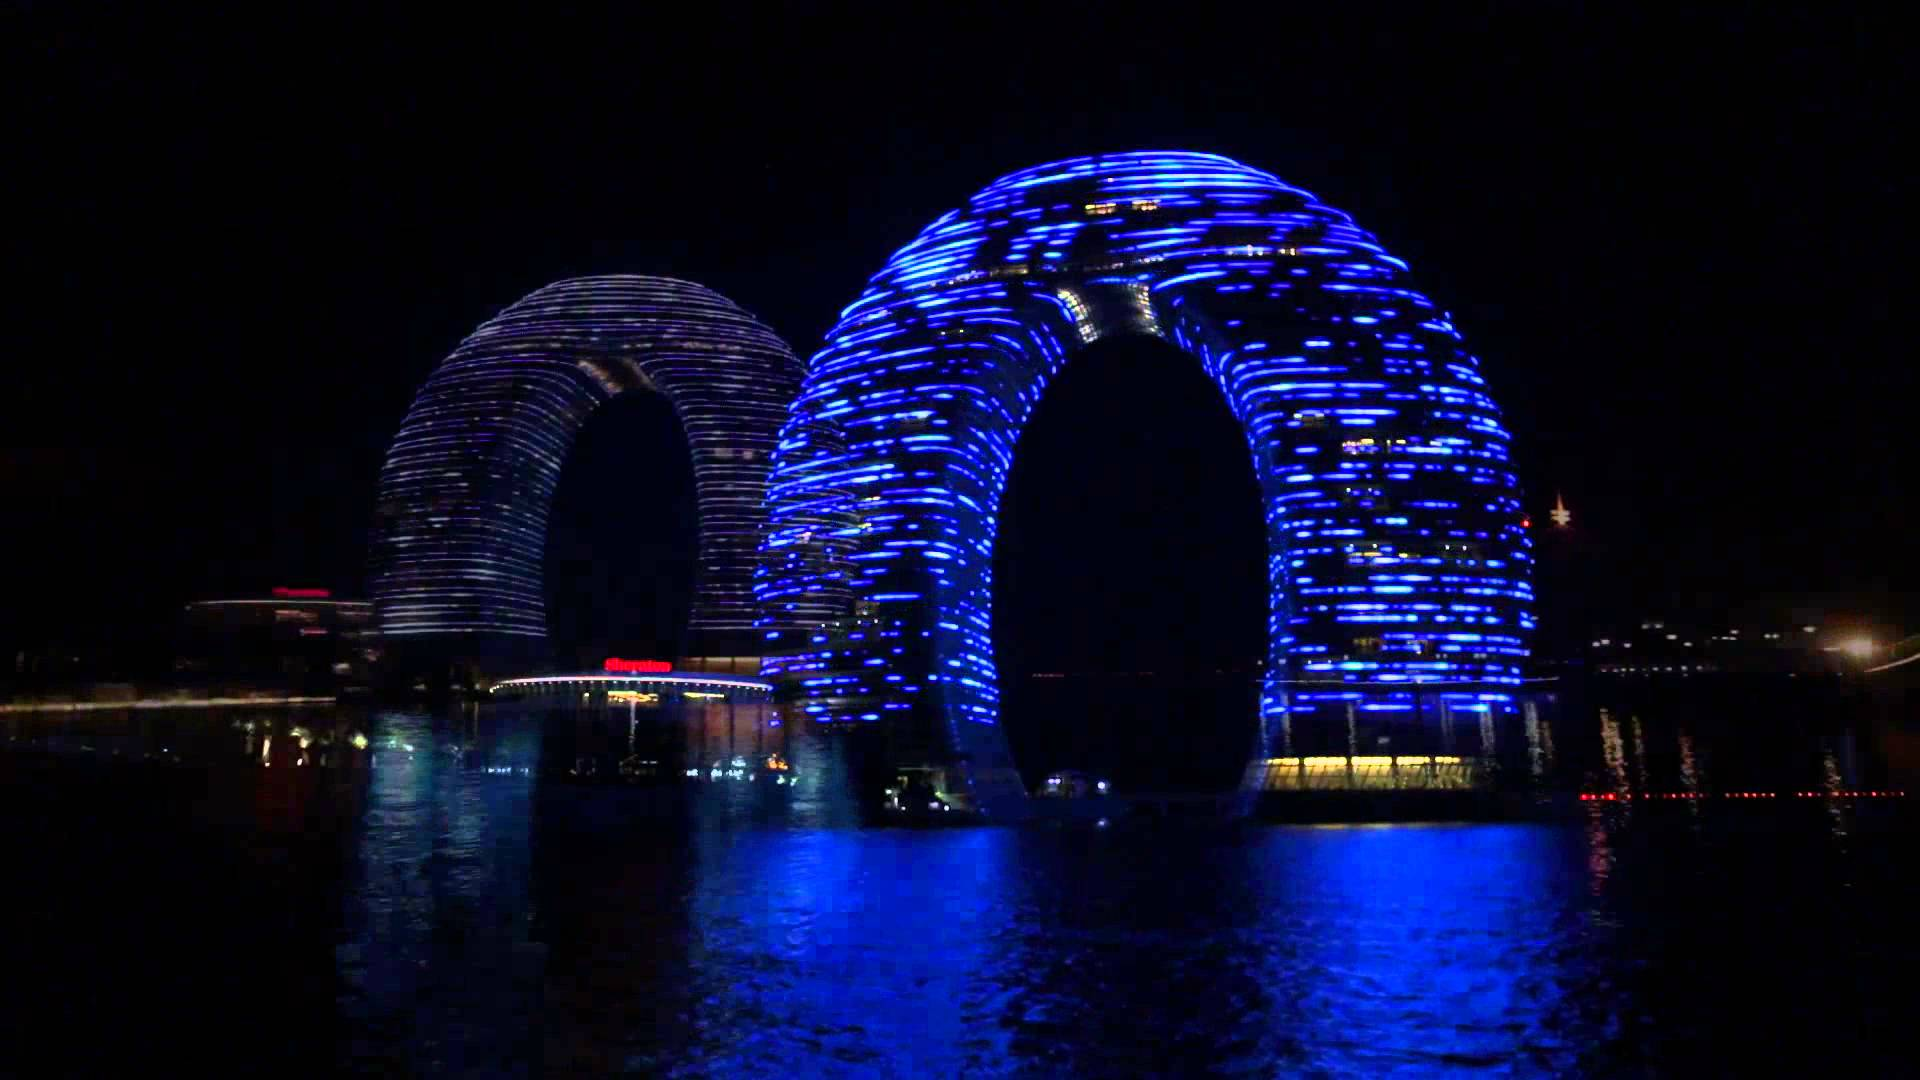 Sheraton Huzhou Hot Spring Resort, Huzhou, Zhejiang, China